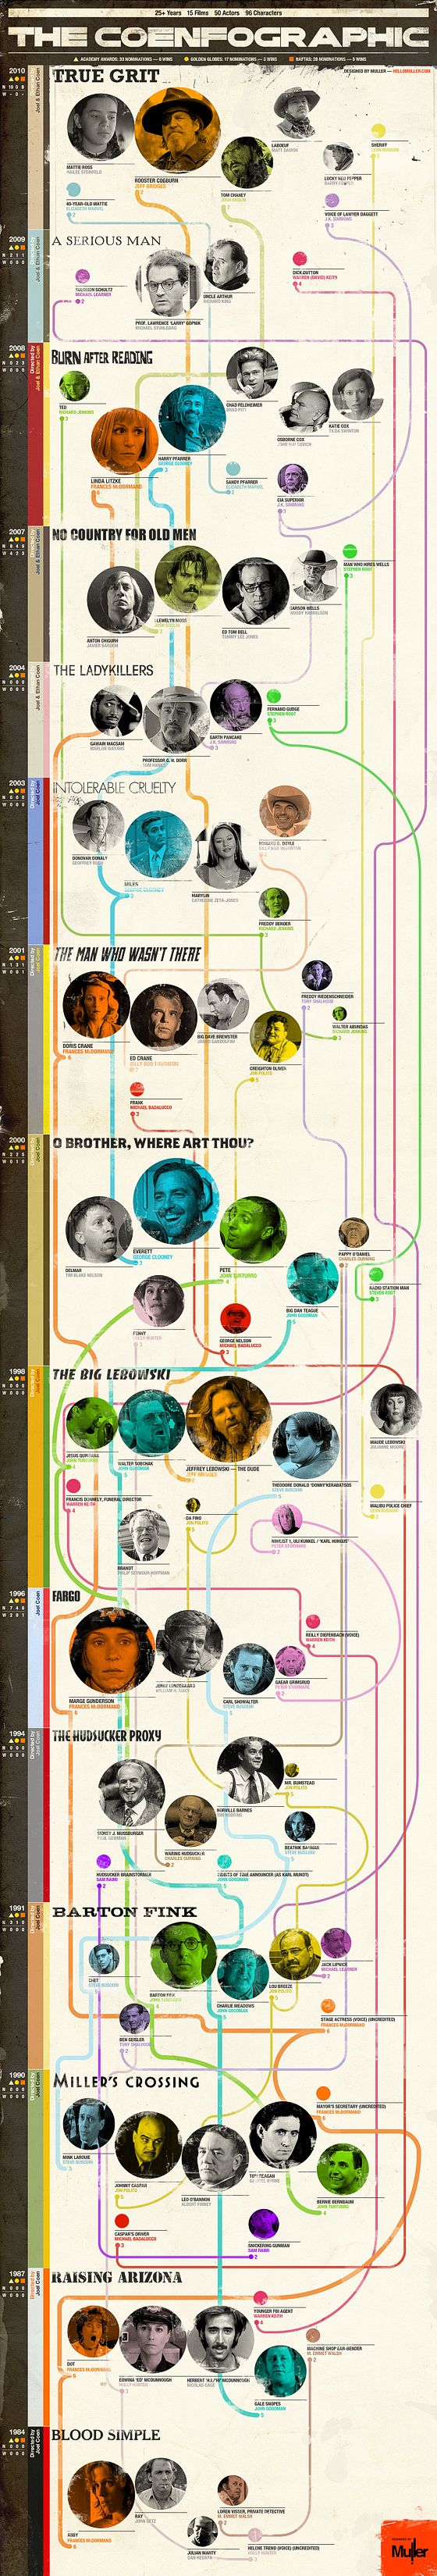 The Coenfographic - Coen Brothers films, in one glorious infographic (via @brainpicker)     http://www.hellomuller.com/blog/2011/01/20/the-coenfographic/